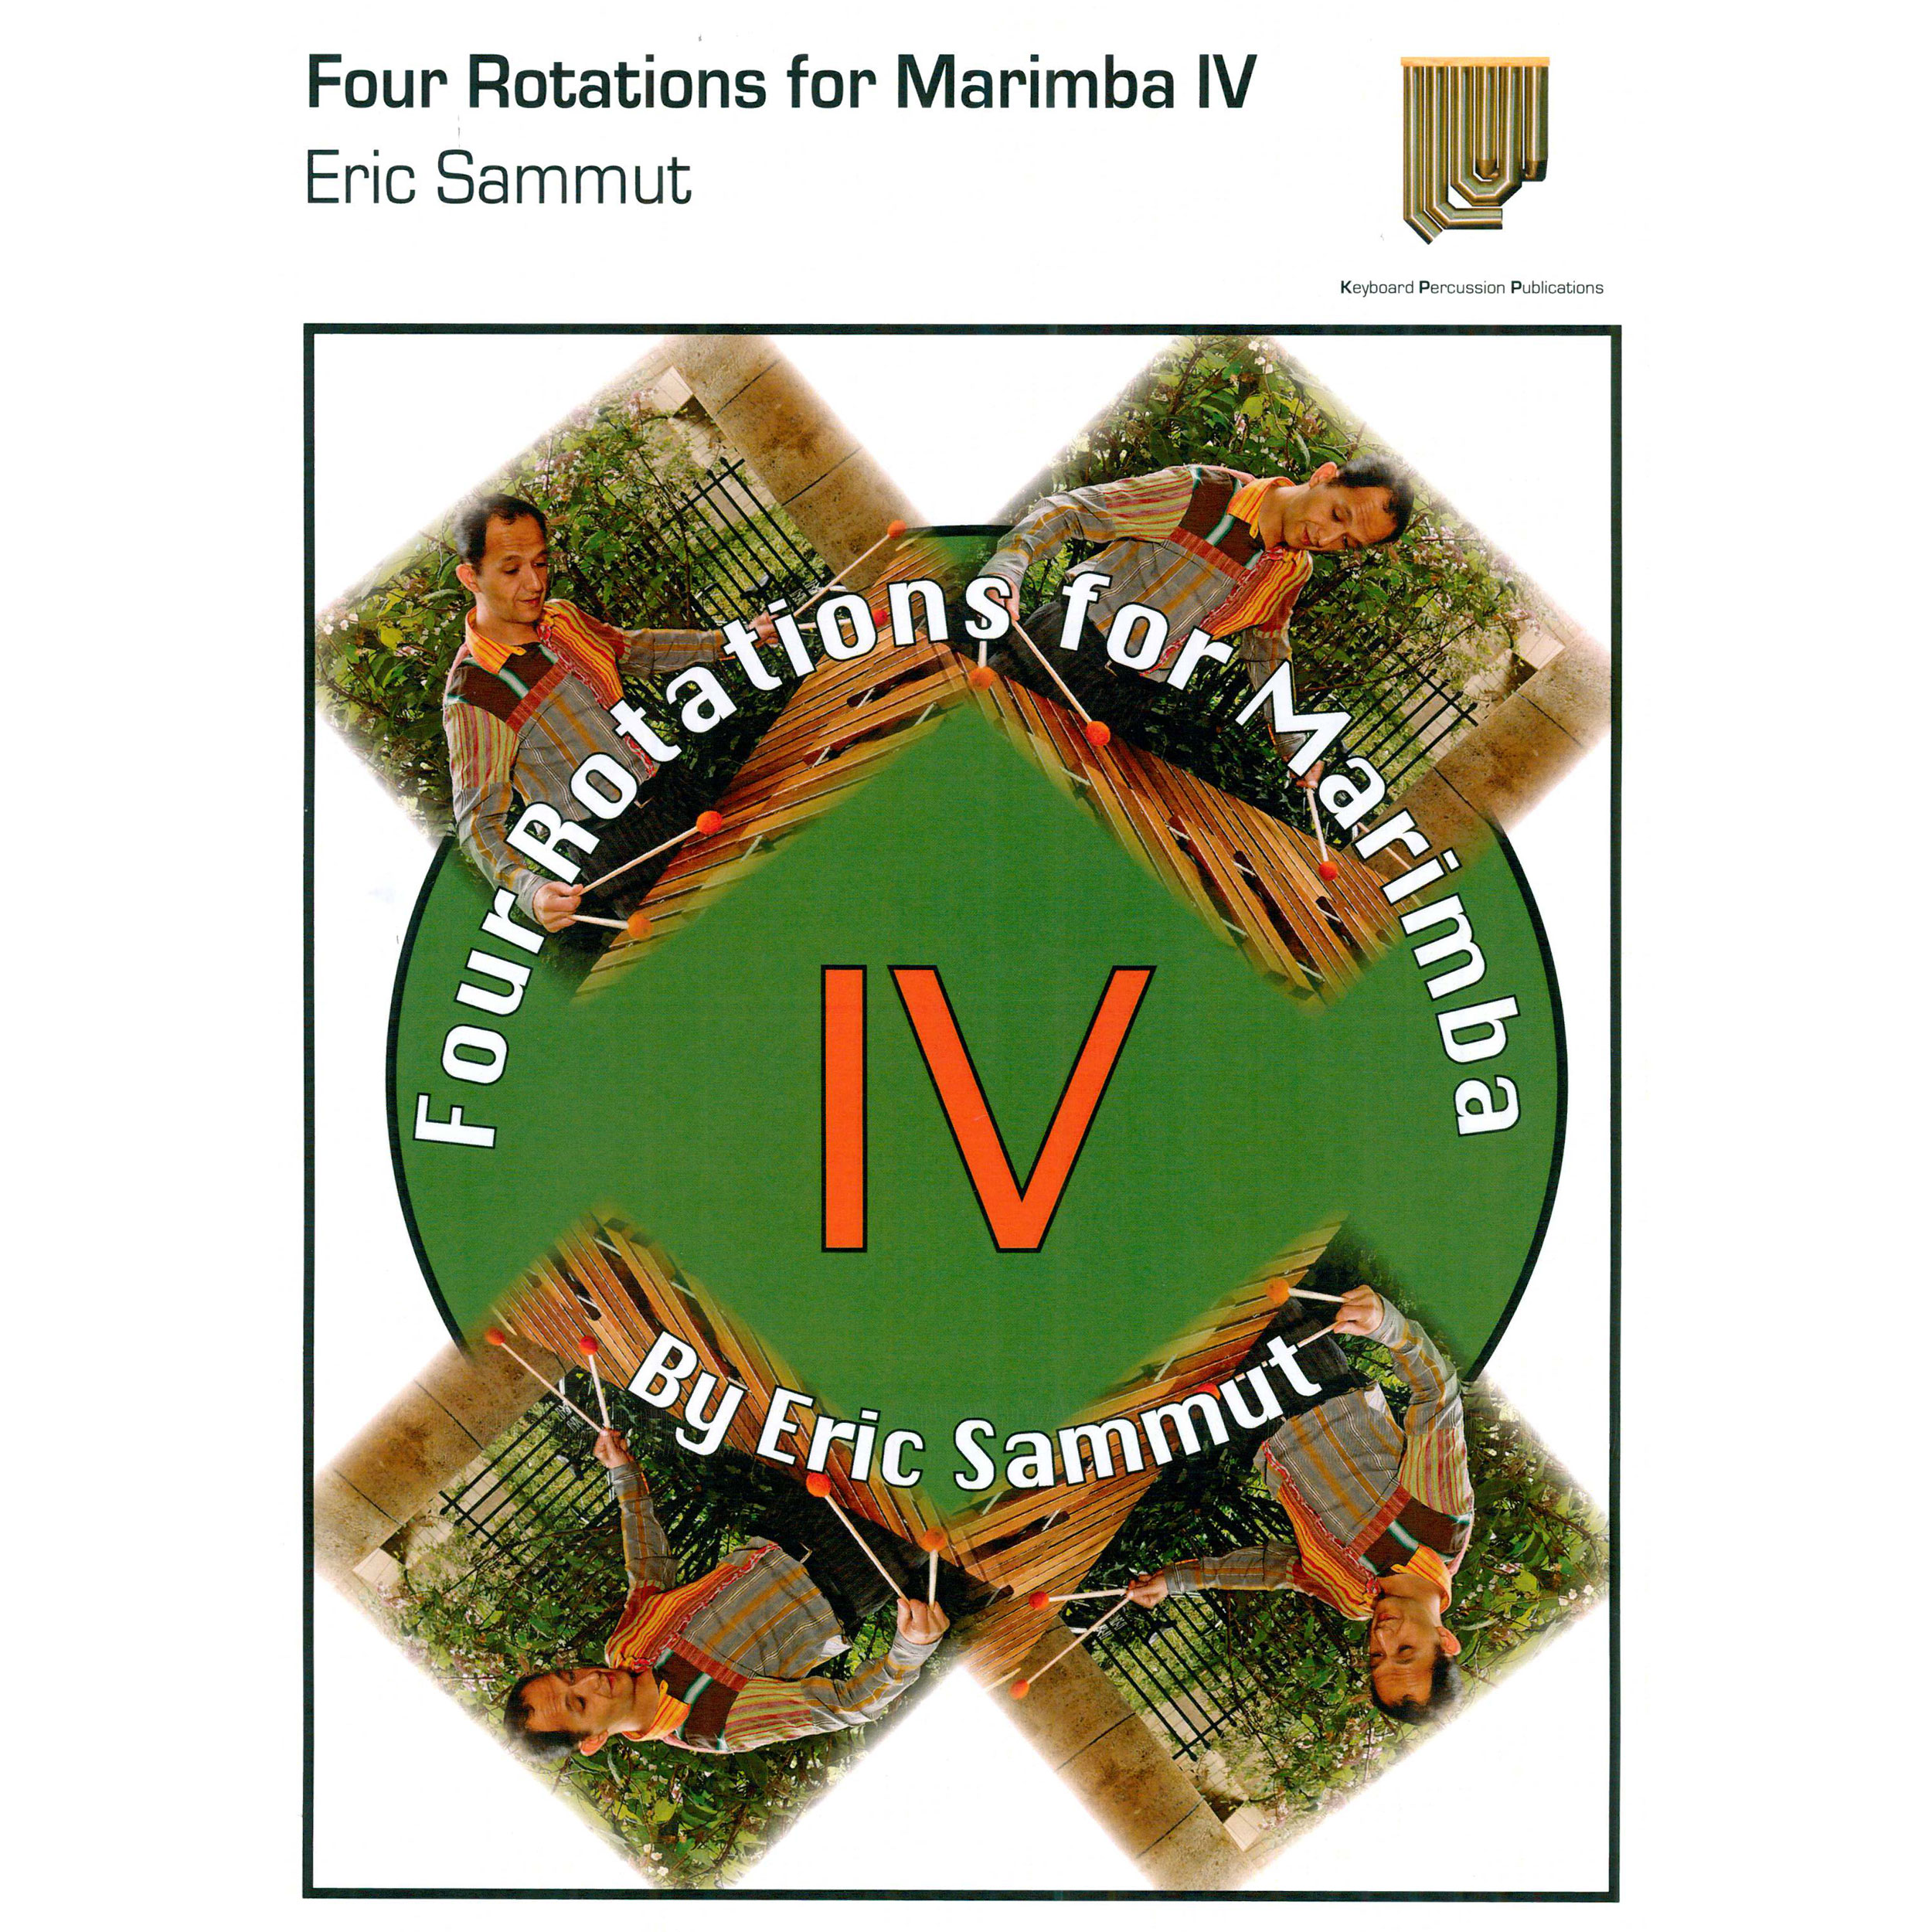 Four Rotations for Marimba IV by Eric Sammut